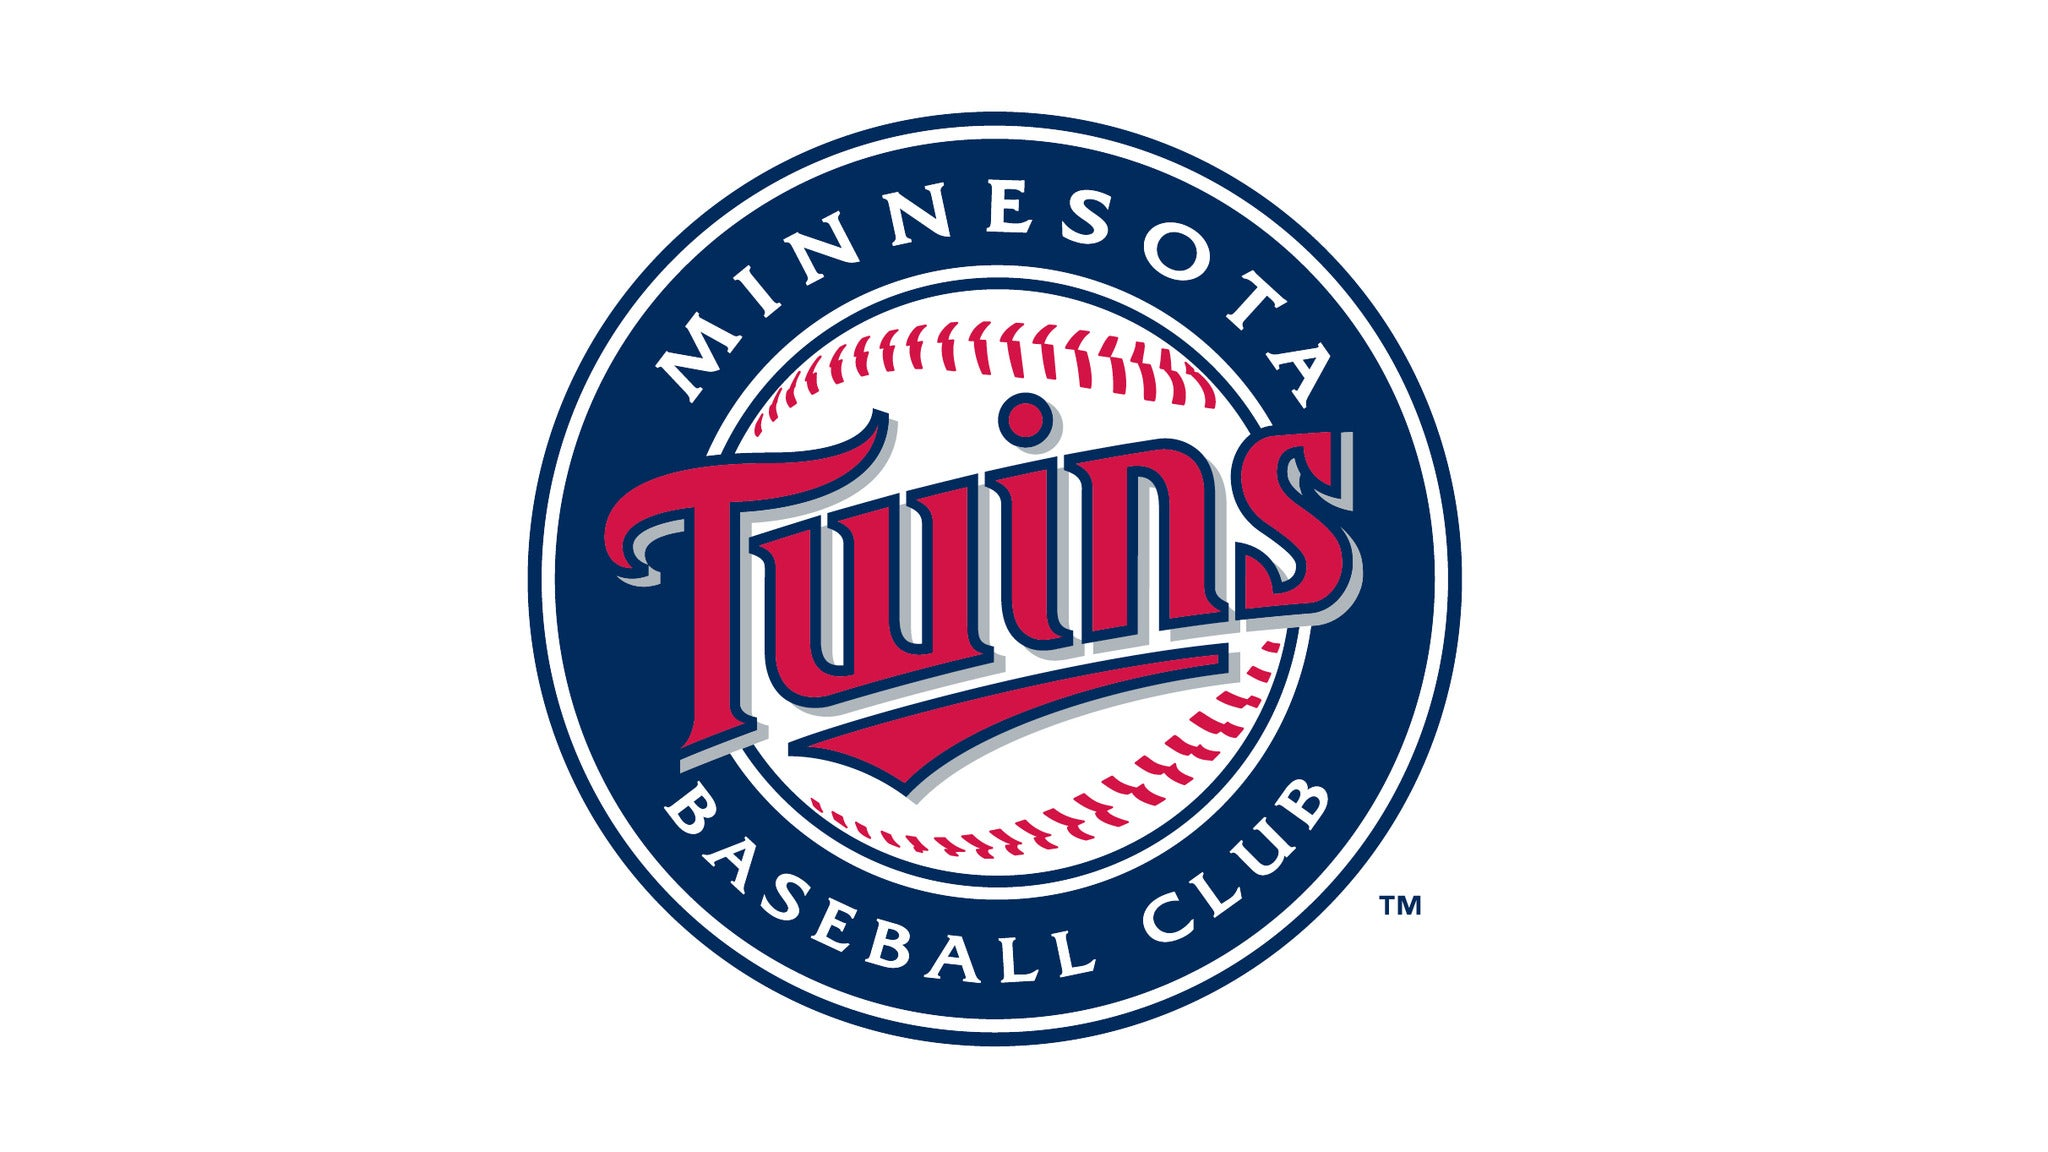 Minnesota Twins vs. New York Mets